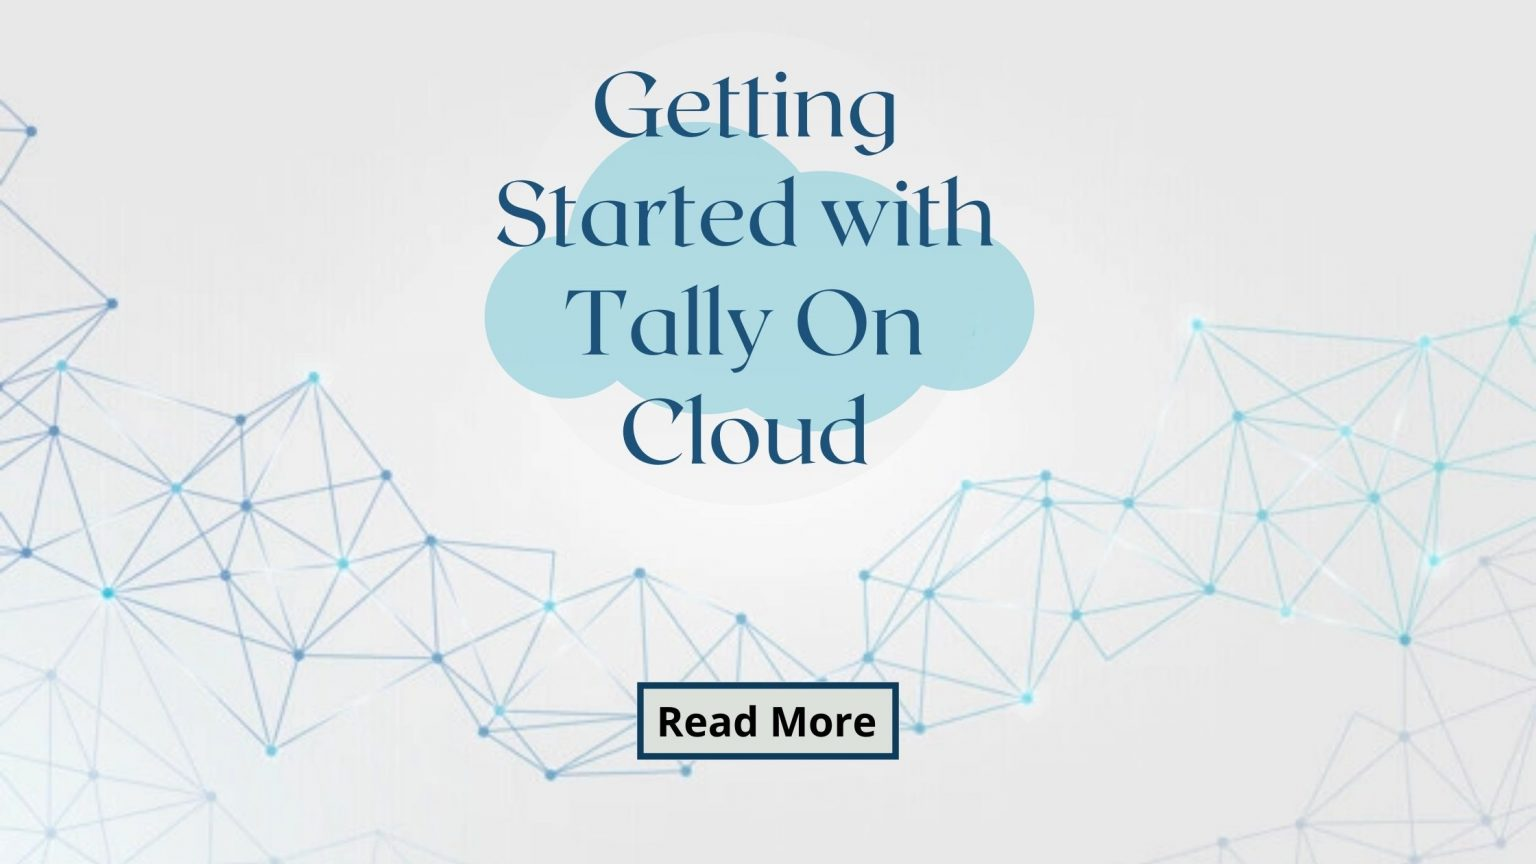 Getting Started with Tally On Cloud